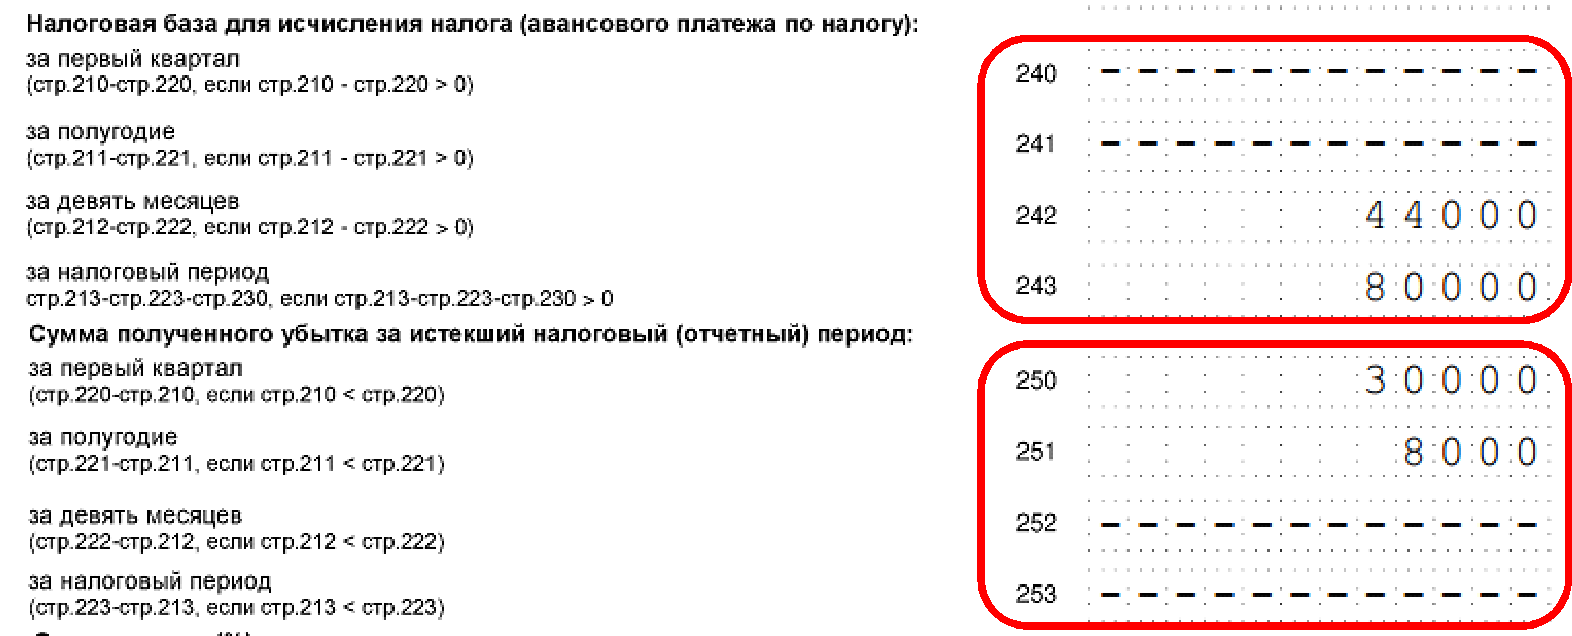 http://ppt.ru/images/news/130274-5.png